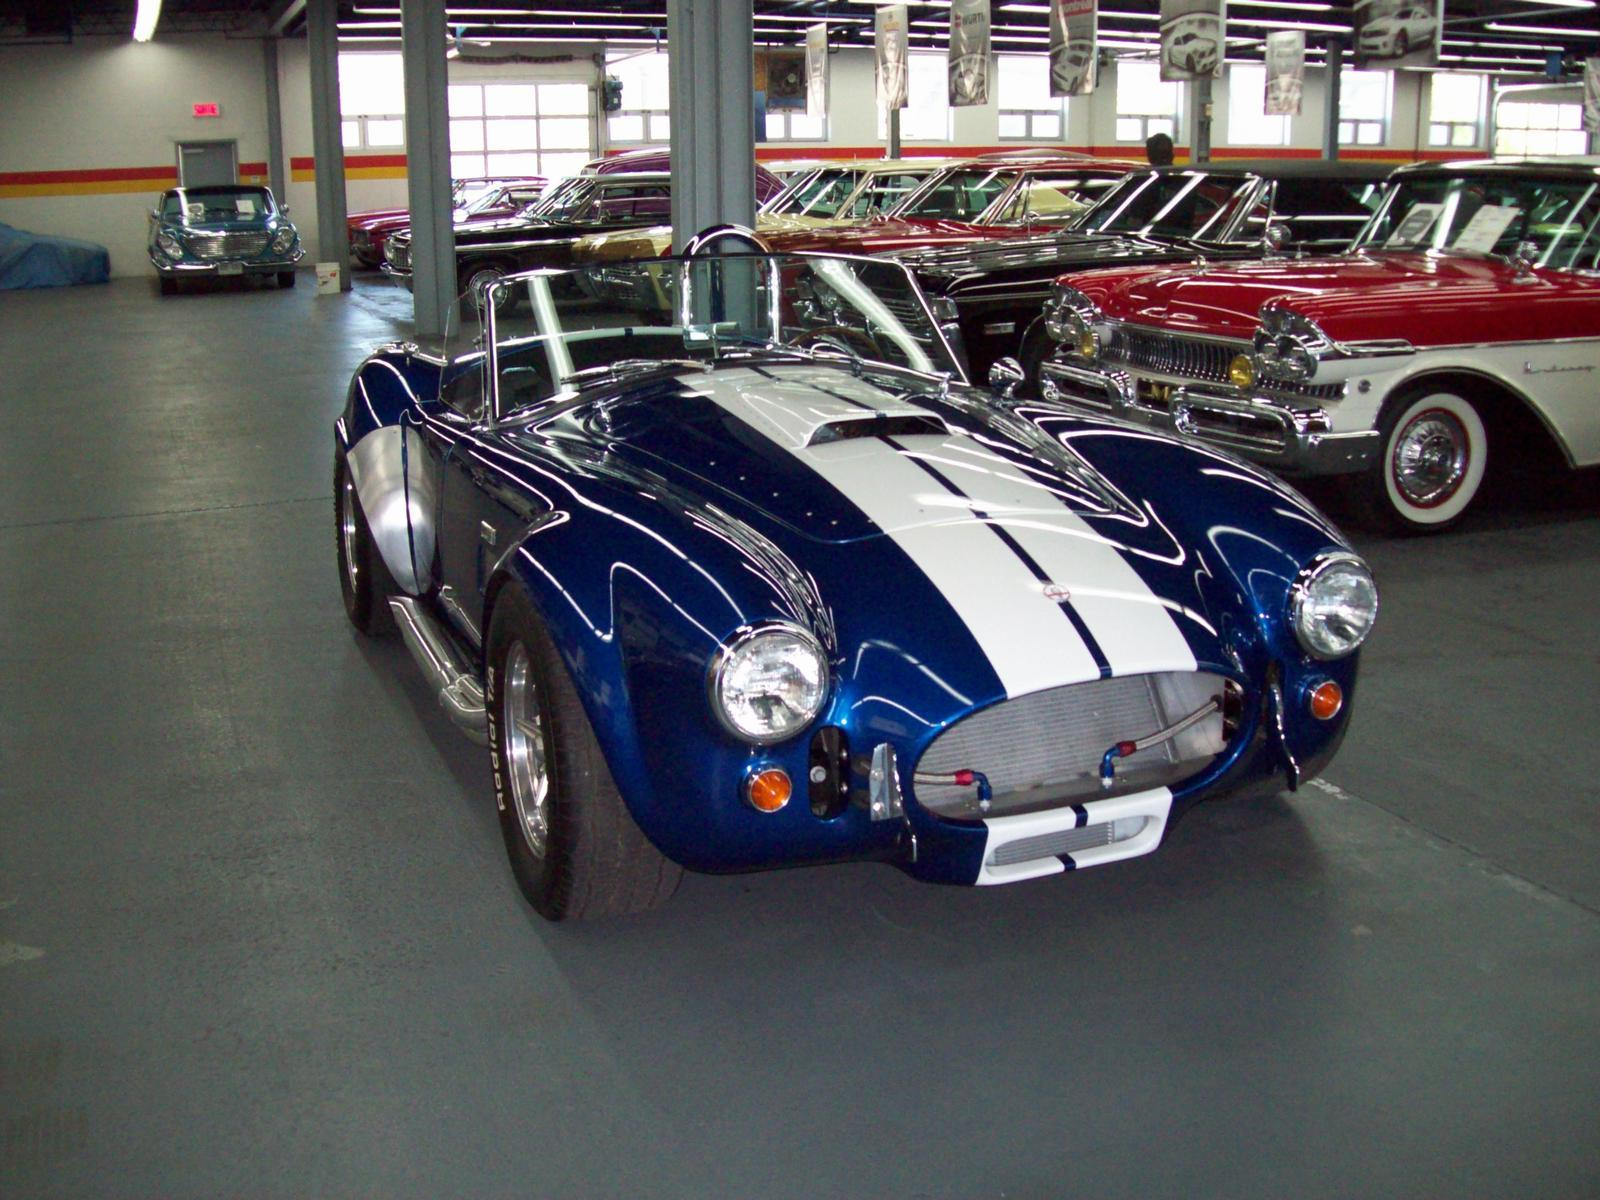 used 1966 ac cobra replica for sale in saint l onard john scotti classic cars h1r 2y7 2070743. Black Bedroom Furniture Sets. Home Design Ideas